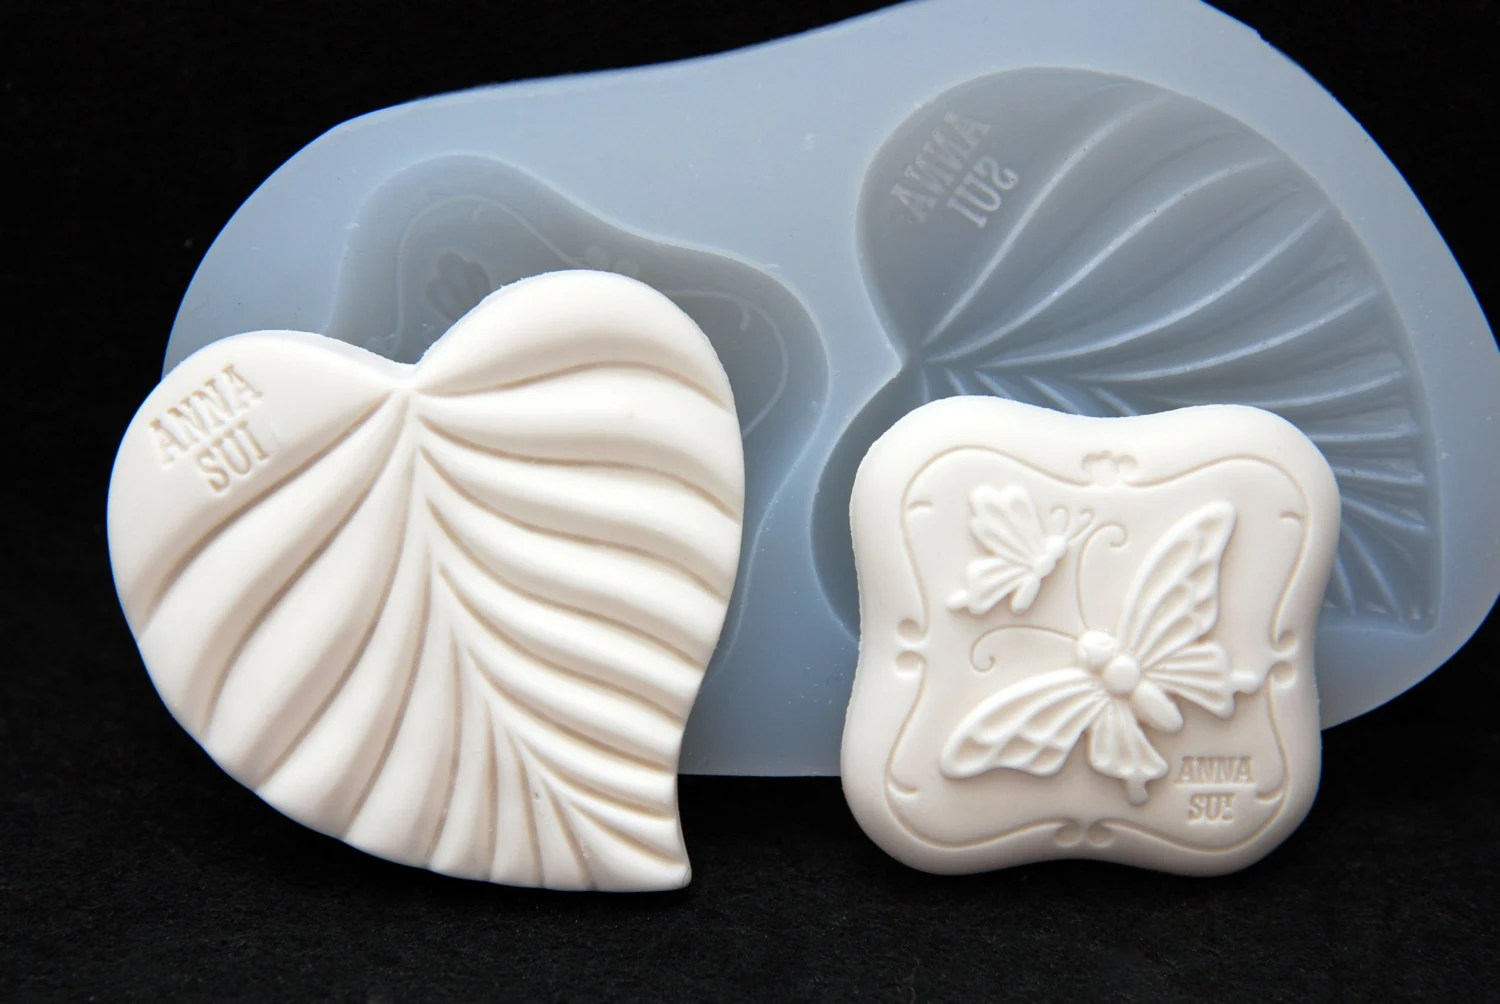 Silicone Soap Molds Australia Silicone Chocolate Candle Molds Ornament Mold Soap Moulds